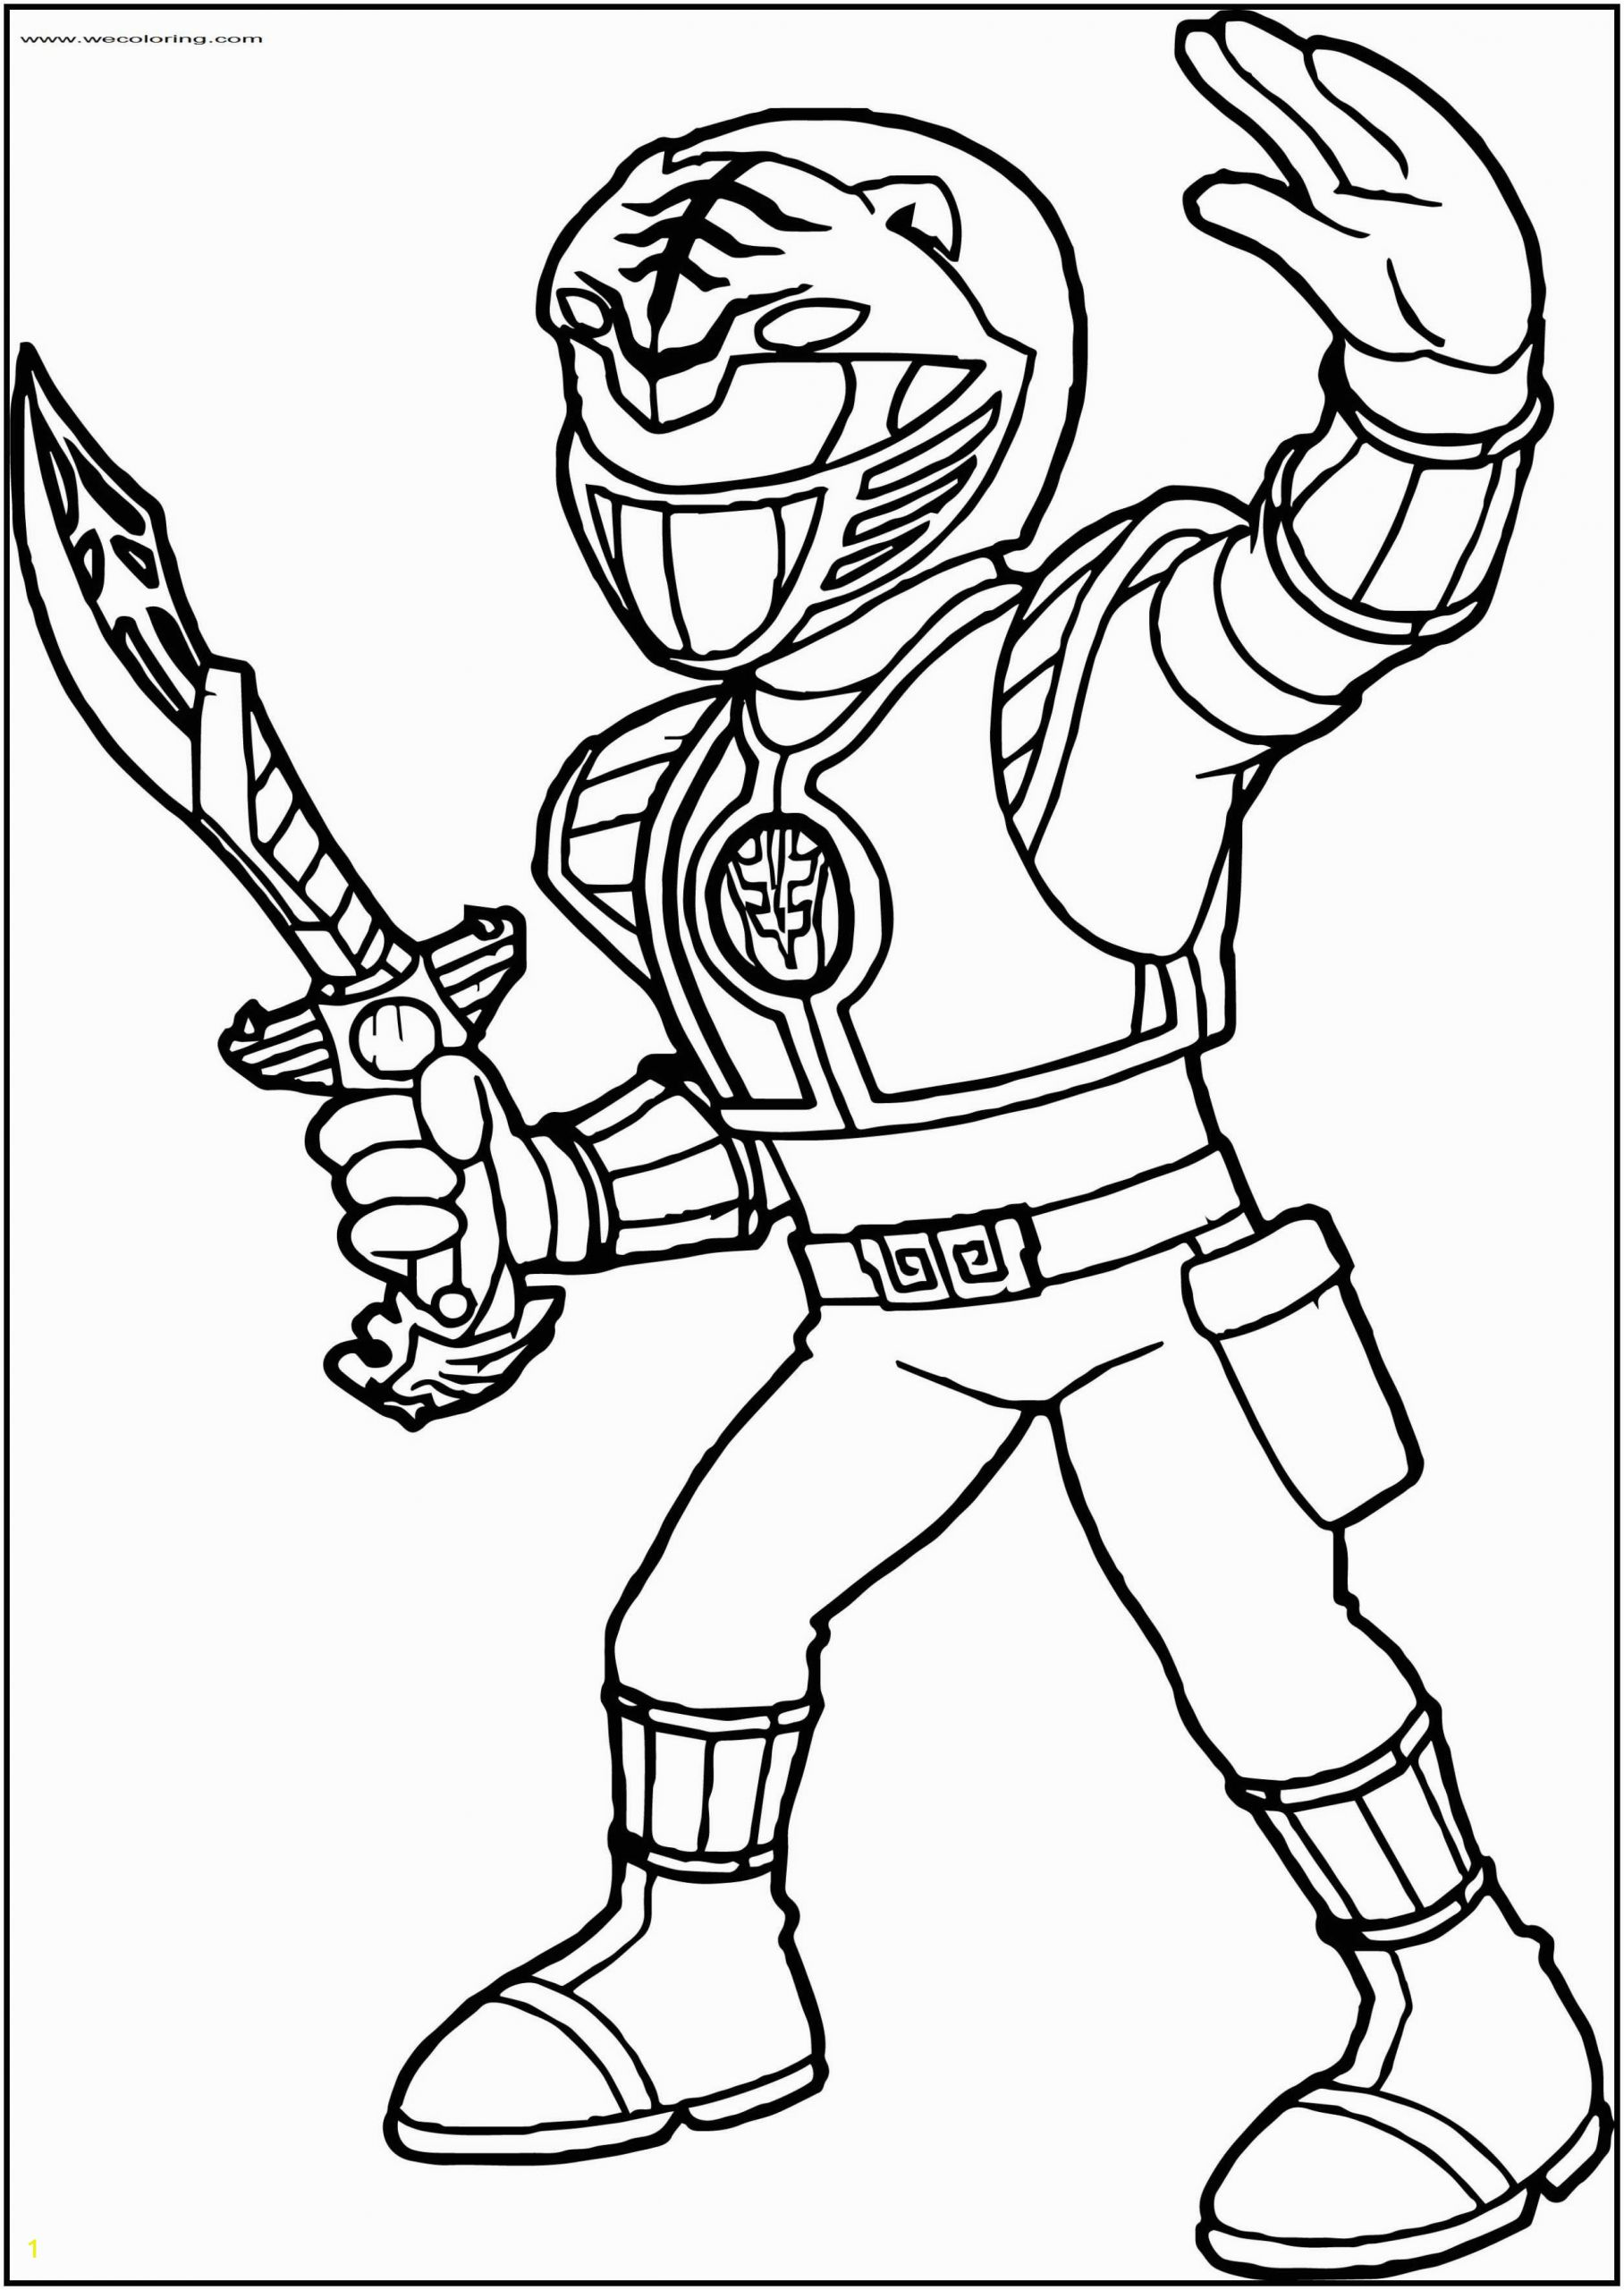 Power Ranger Coloring Pages to Print Power Rangers White Ranger Free Printable Coloring Page